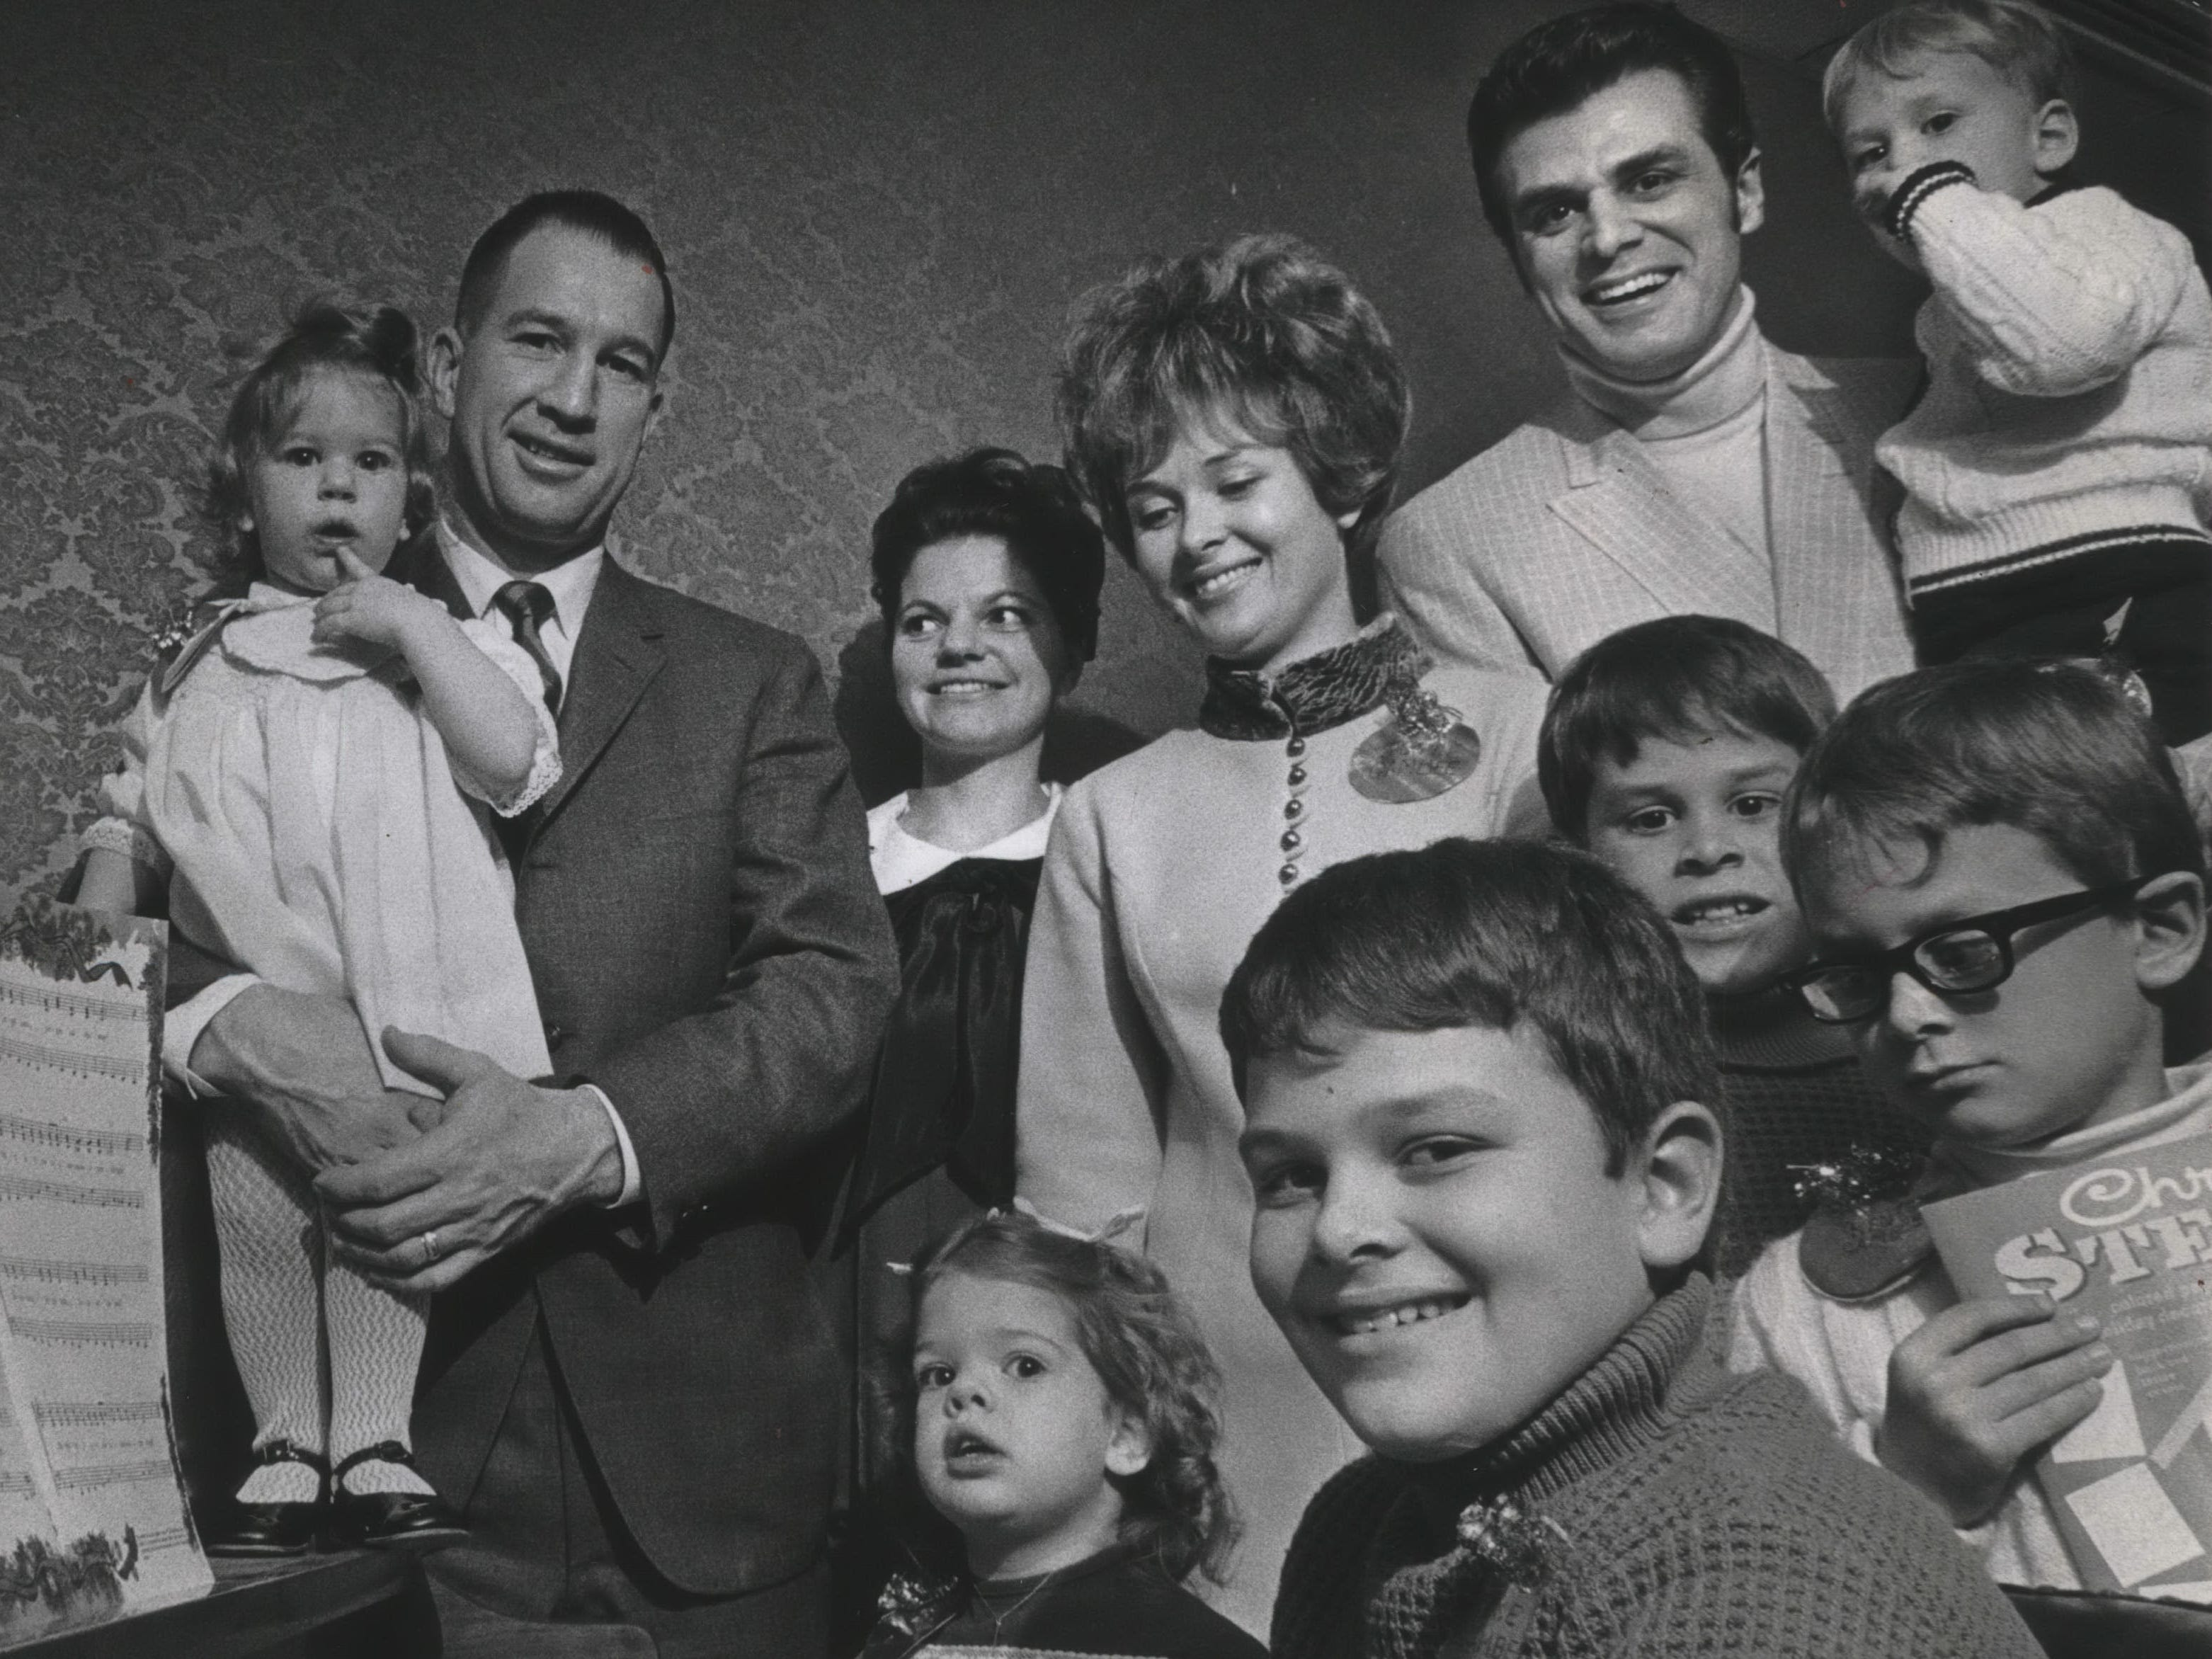 Milwaukee Bucks Coach Larry Costello and Bucks forward Dave Gambee and their families gather around the piano as Milwaukee's new NBA team holds its Christmas party at the Holiday inn Central on Dec. 15, 1968. Shown, from left: (rear) Pamela Costello; Coach Costello; Barbara Costello;  Joyce Gambee, Dave Gambee, and Brad Gambee; (front) Lesley Costello; Mike Gambee; Greg Gambee; and Kent Gambee. The party was held early because of the Bucks' tight schedule. The photo was published in the Dec. 17, 1968, Milwaukee Journal.